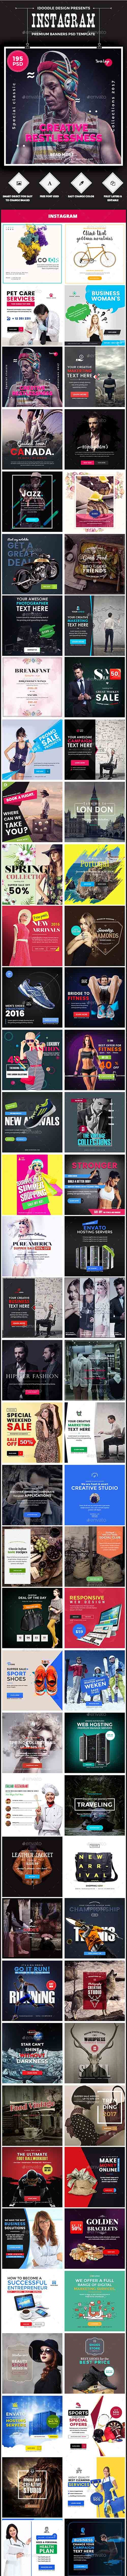 GR - Promotion Instagram Banners Ads - 195 PSD-14962085